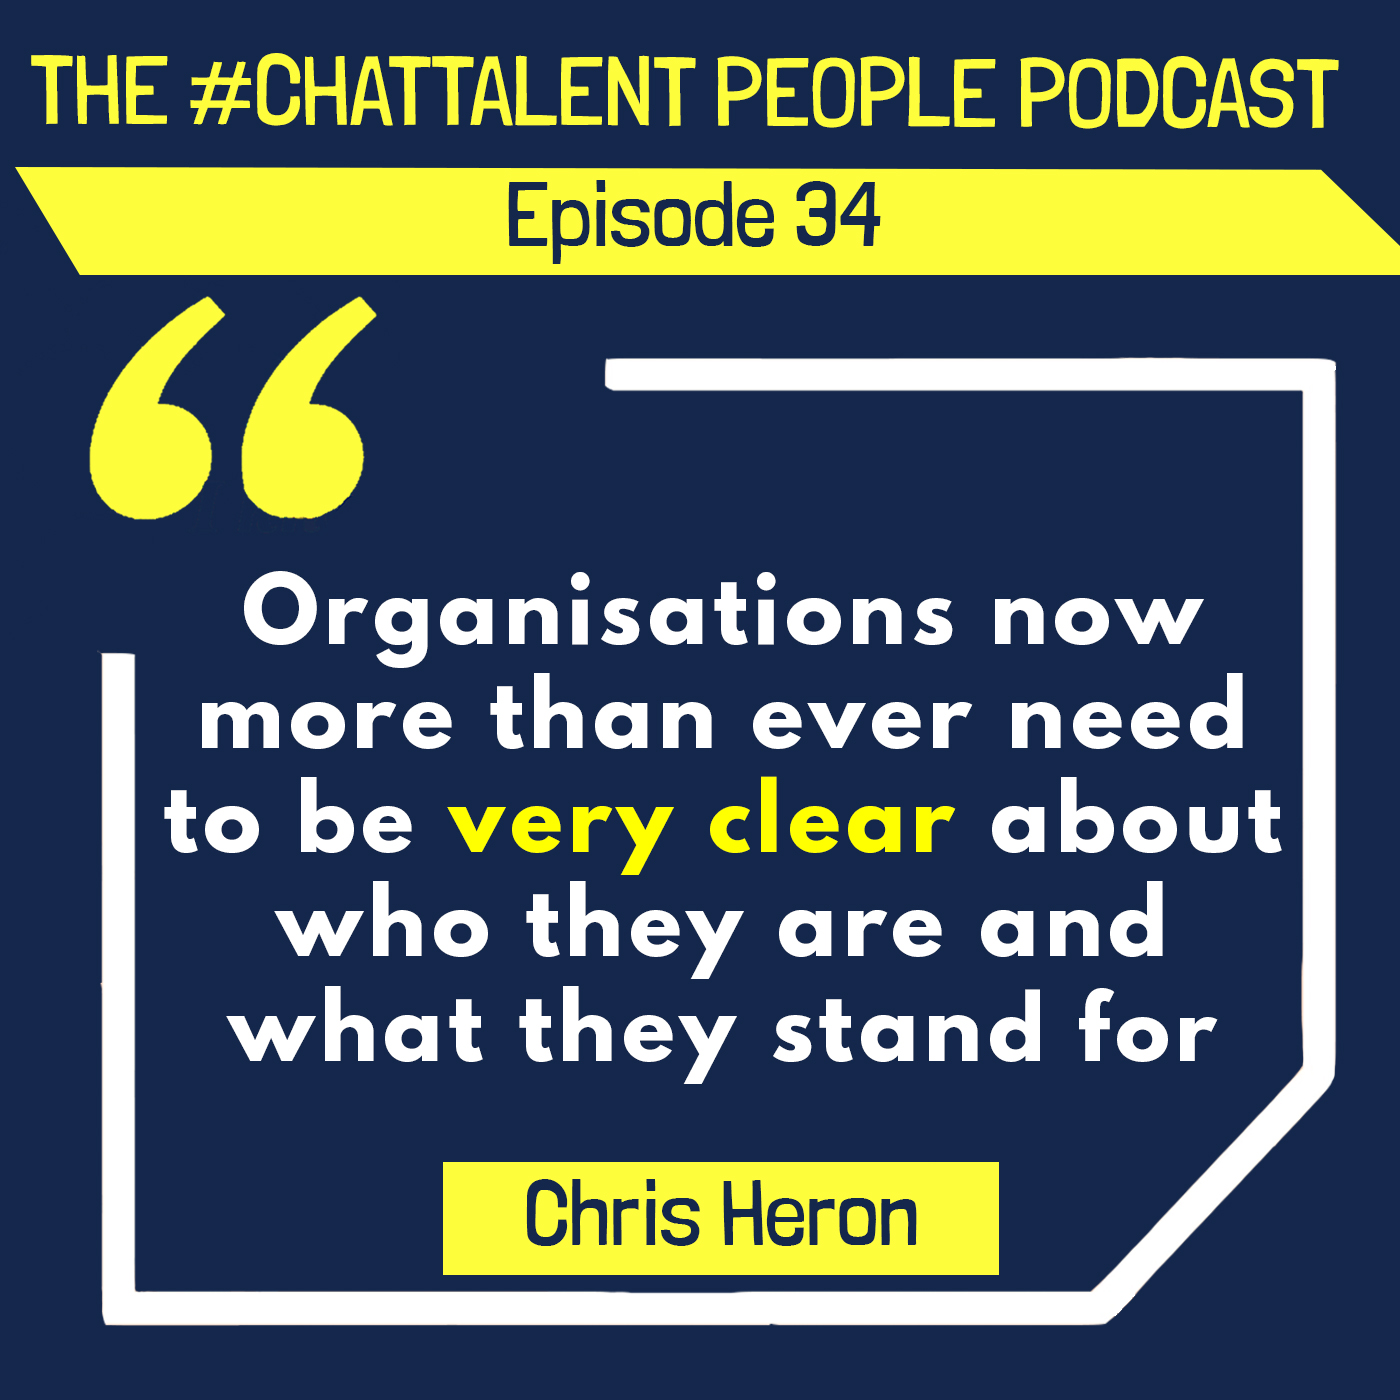 Chris Heron - PullOut Quote